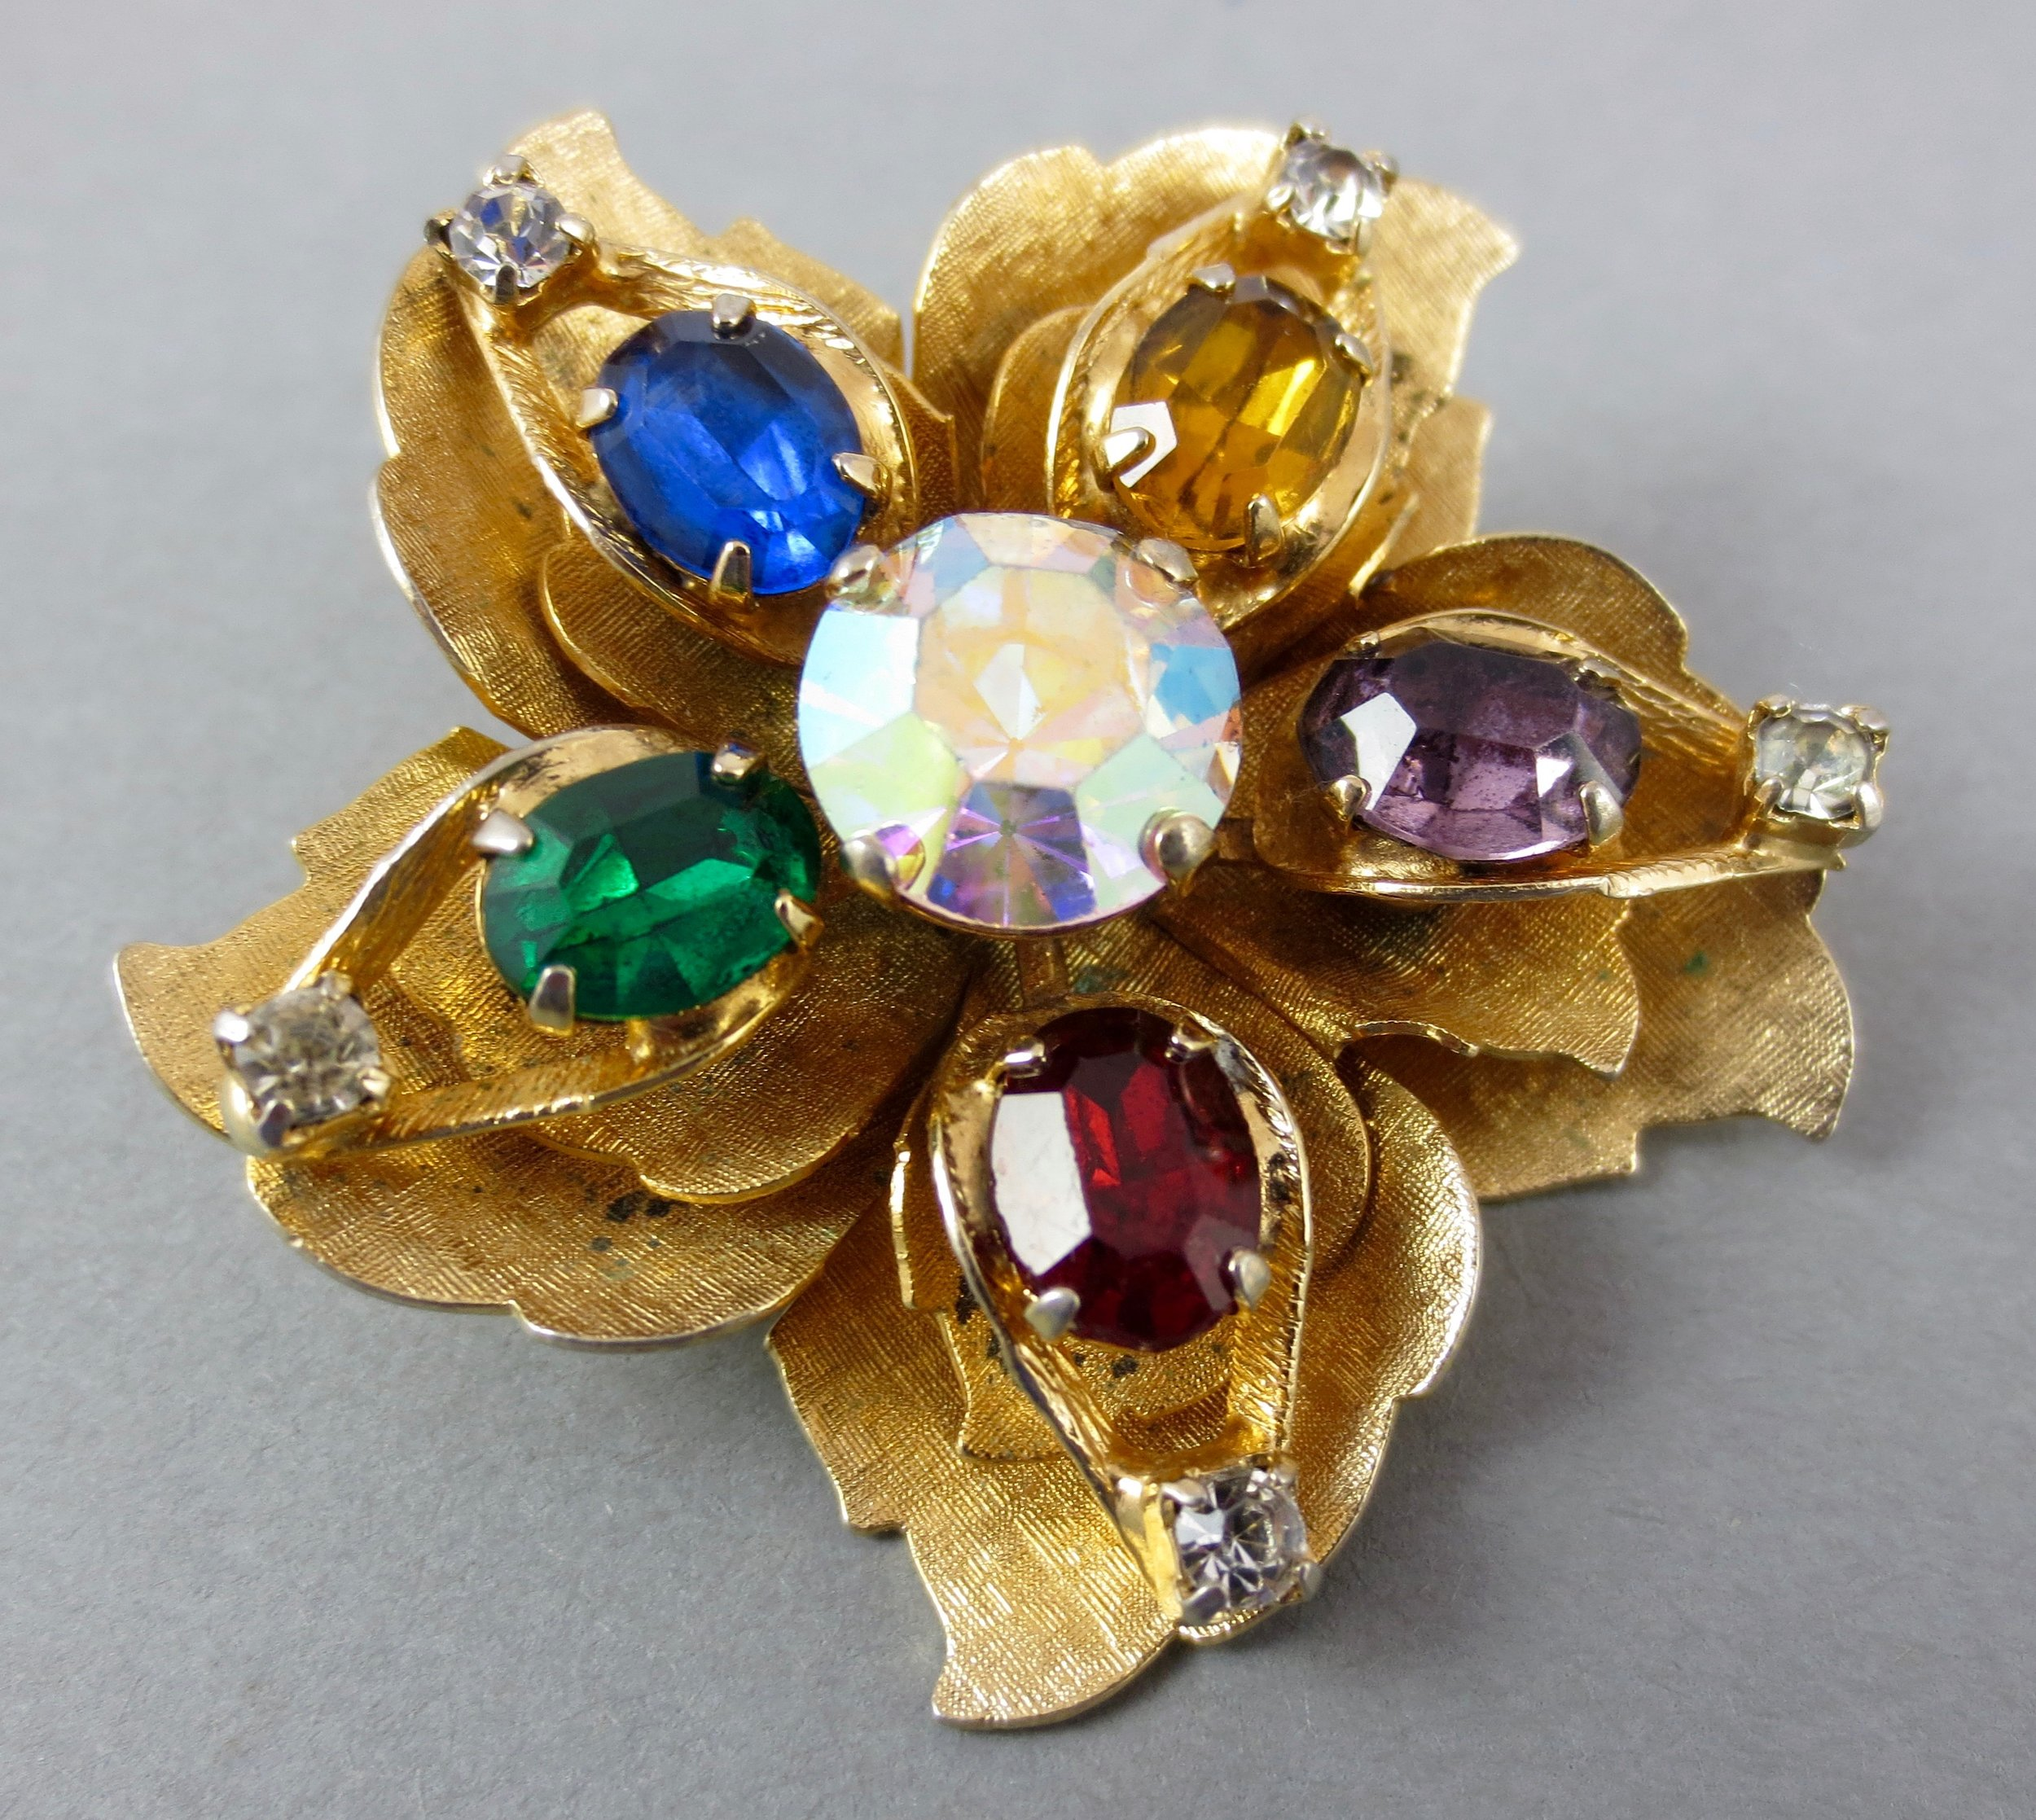 gorgeous vintage WARNER flower brooch. layered gold metal leaves, adorned with multi colored rhinestones. resparkable vintage.